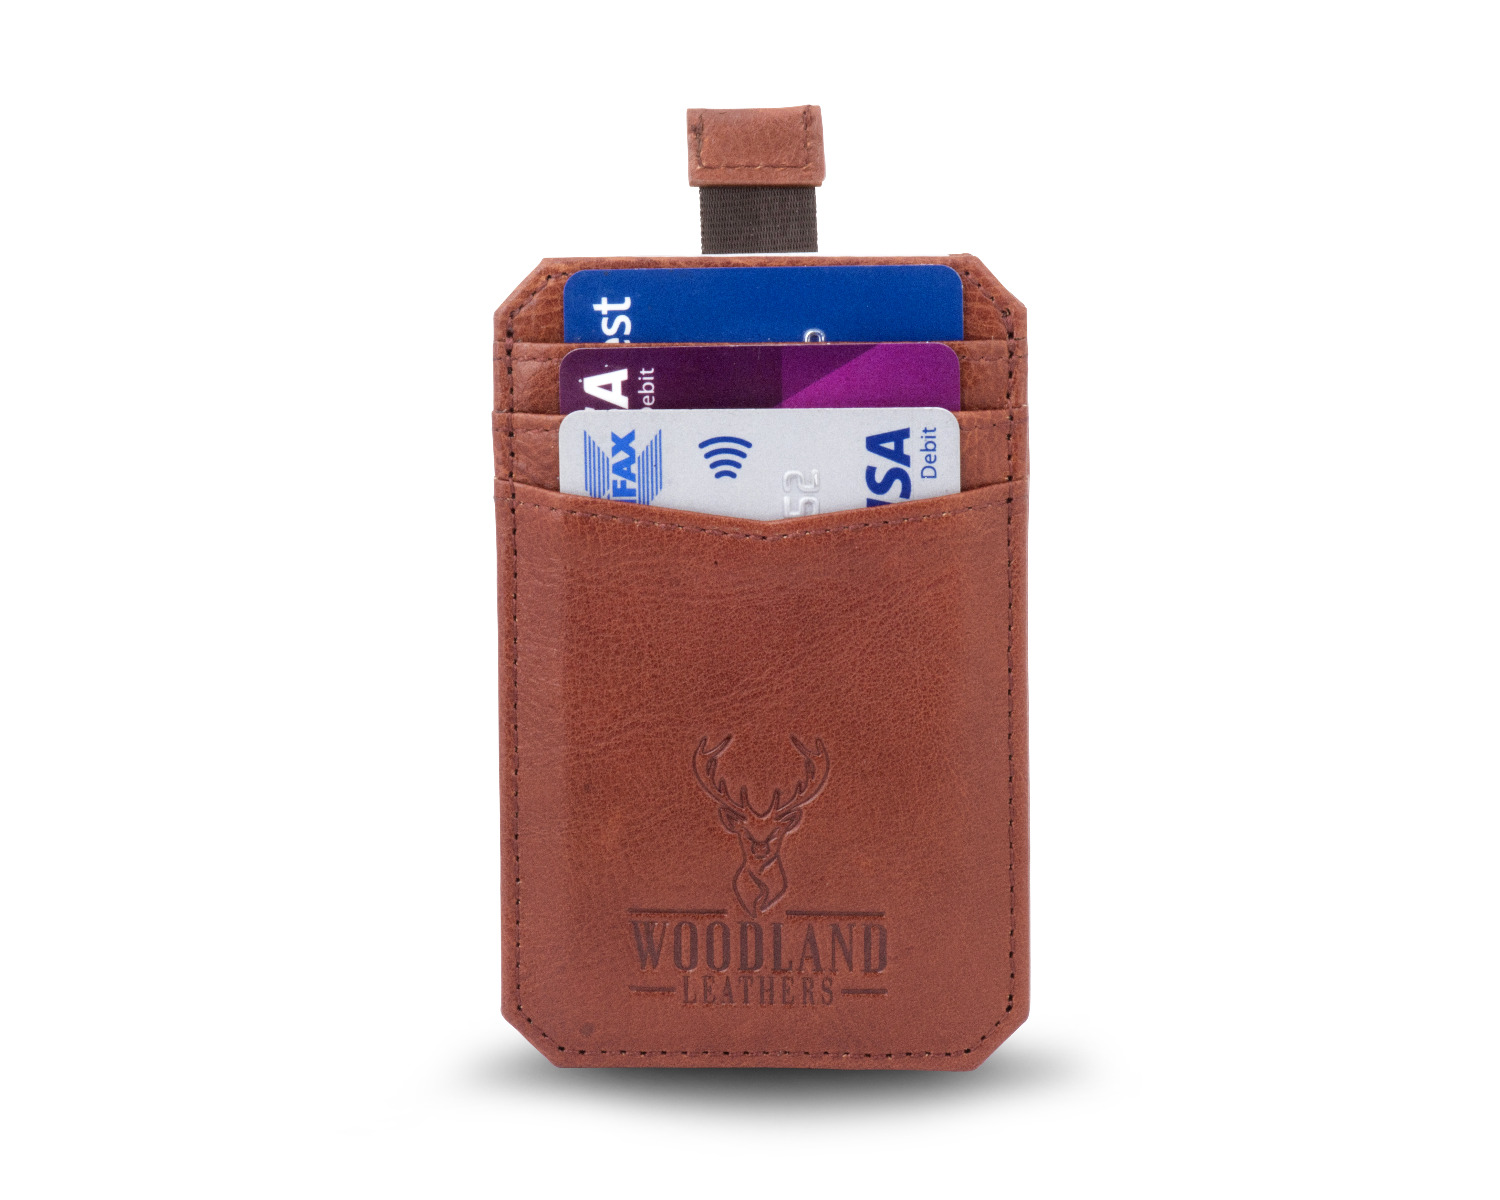 Woodland Leathers Brown Leather Credit Card Case